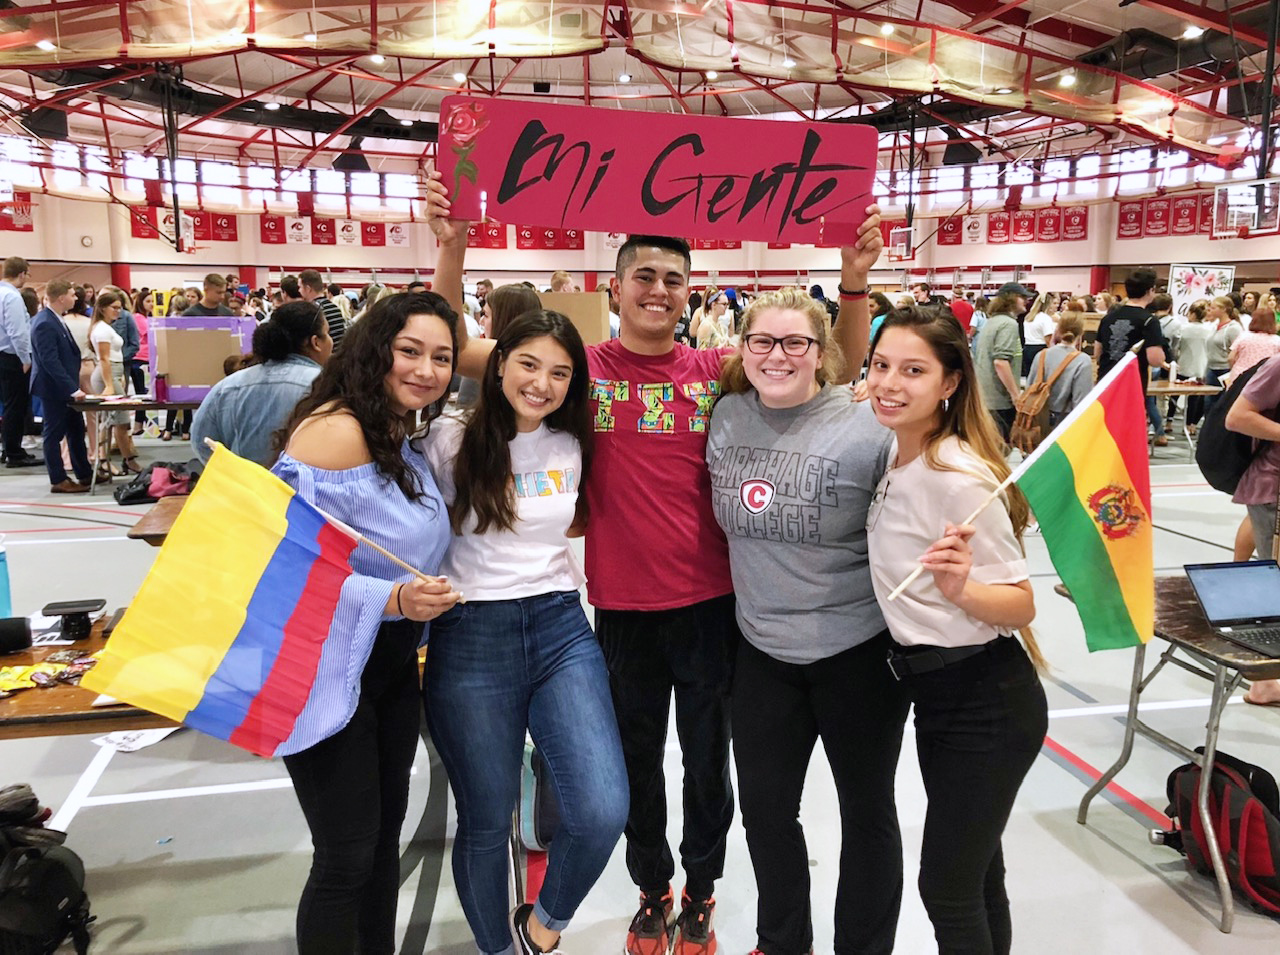 Carthage College's Student Involvement Fair 2019 is one way leaders there aim to embed anti-racism on campus.